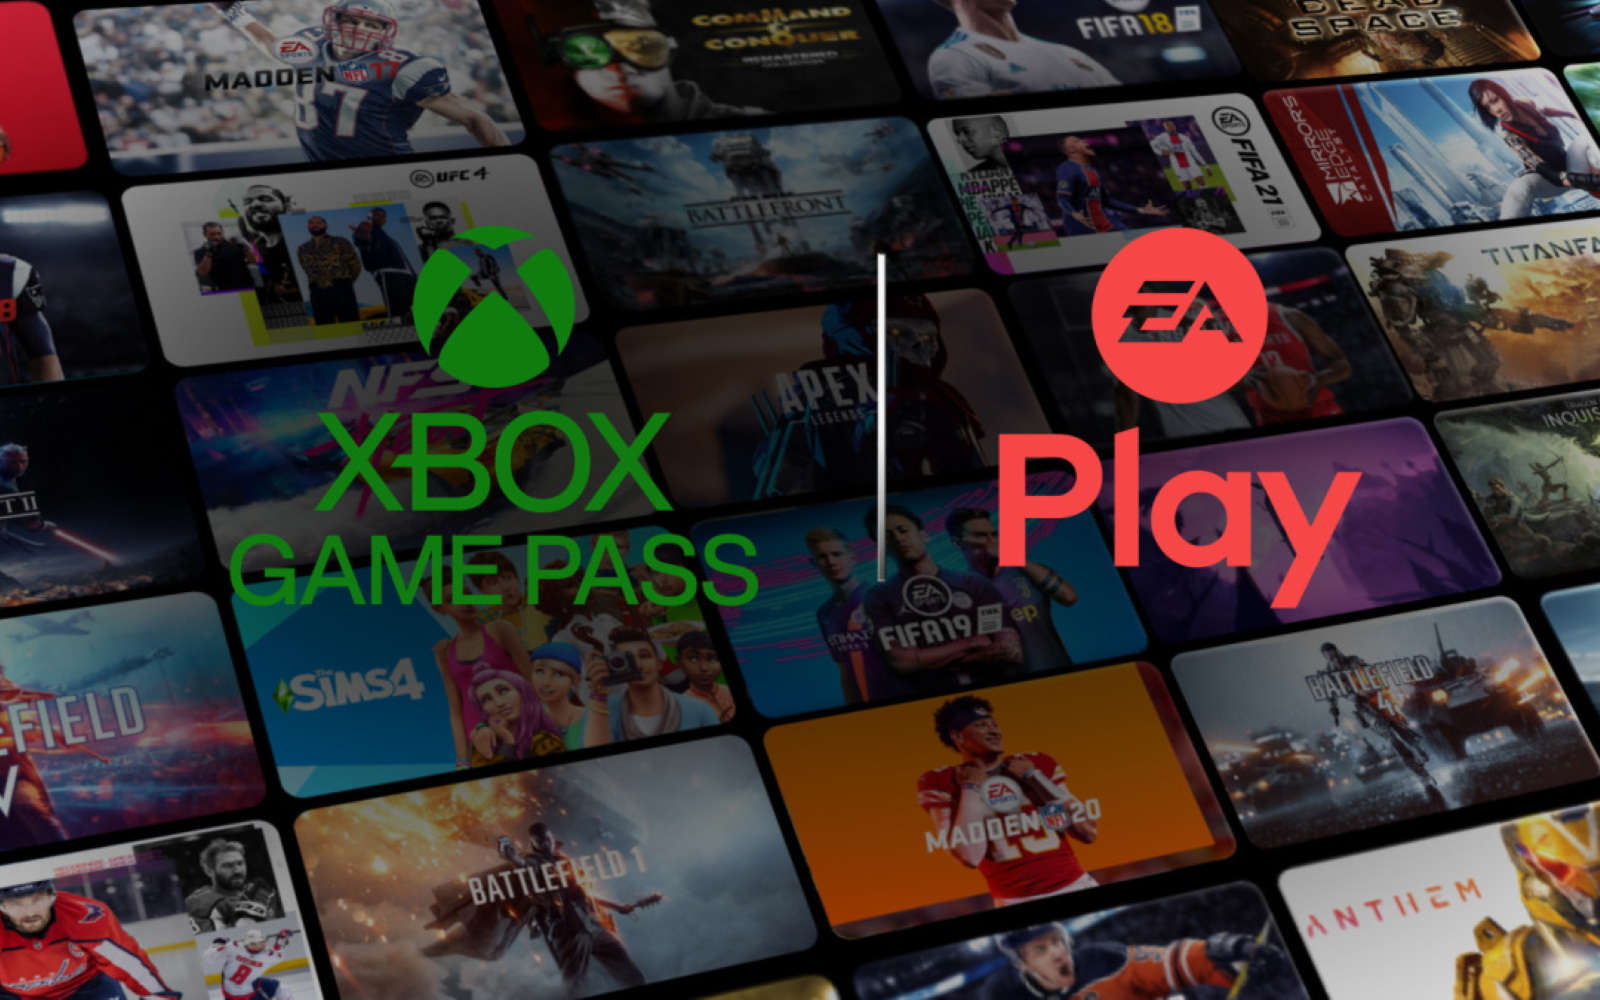 EA Play Joins Xbox Game Pass From November 10th